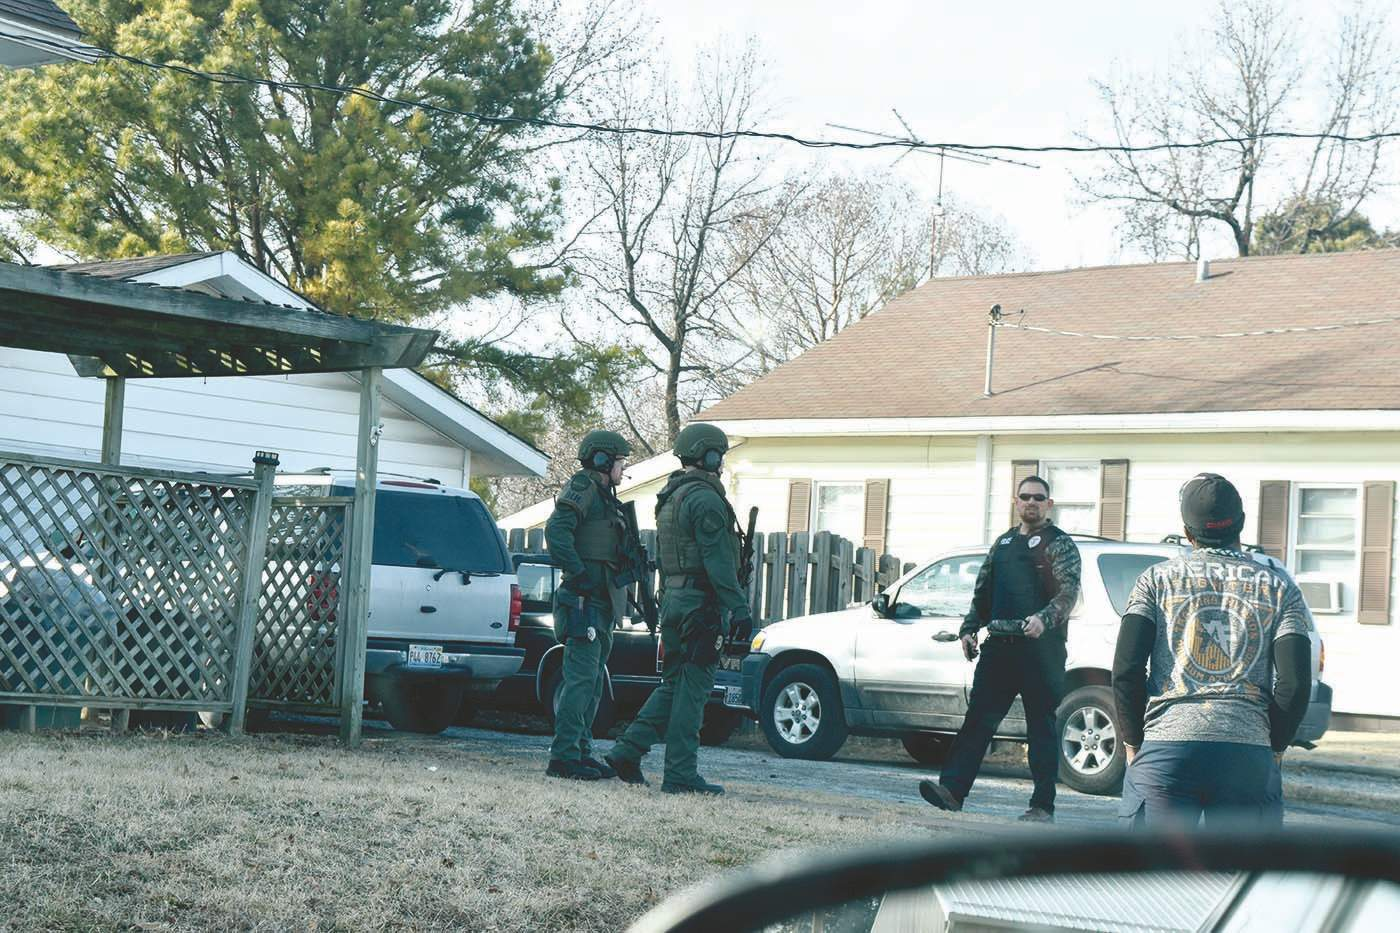 Marion Police made a drug bust at a home near the intersection of Court and Boulevard streets Thursday afternoon. The narcotics unit appehended three black males and one white male. More information will be provided as it becomes available.